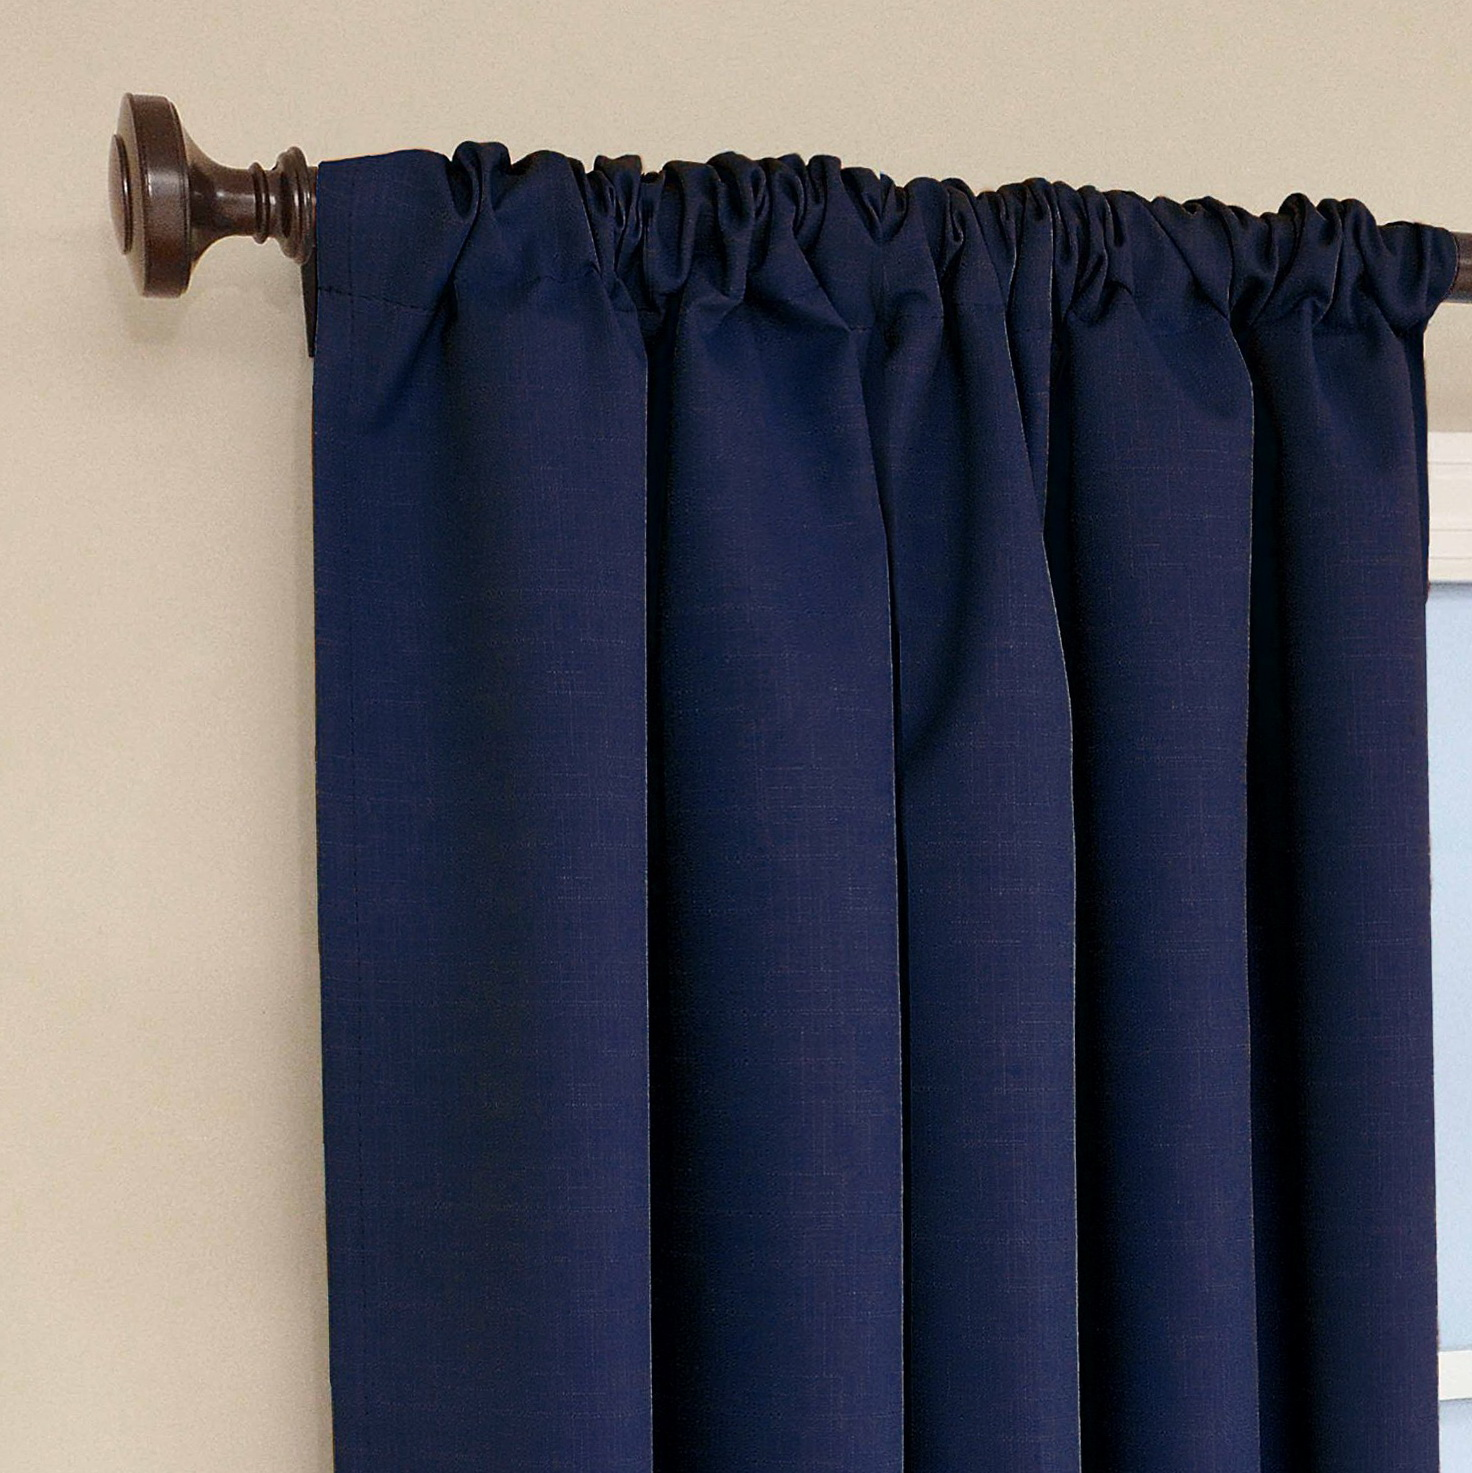 Eclipse Thermal Curtains Amazon